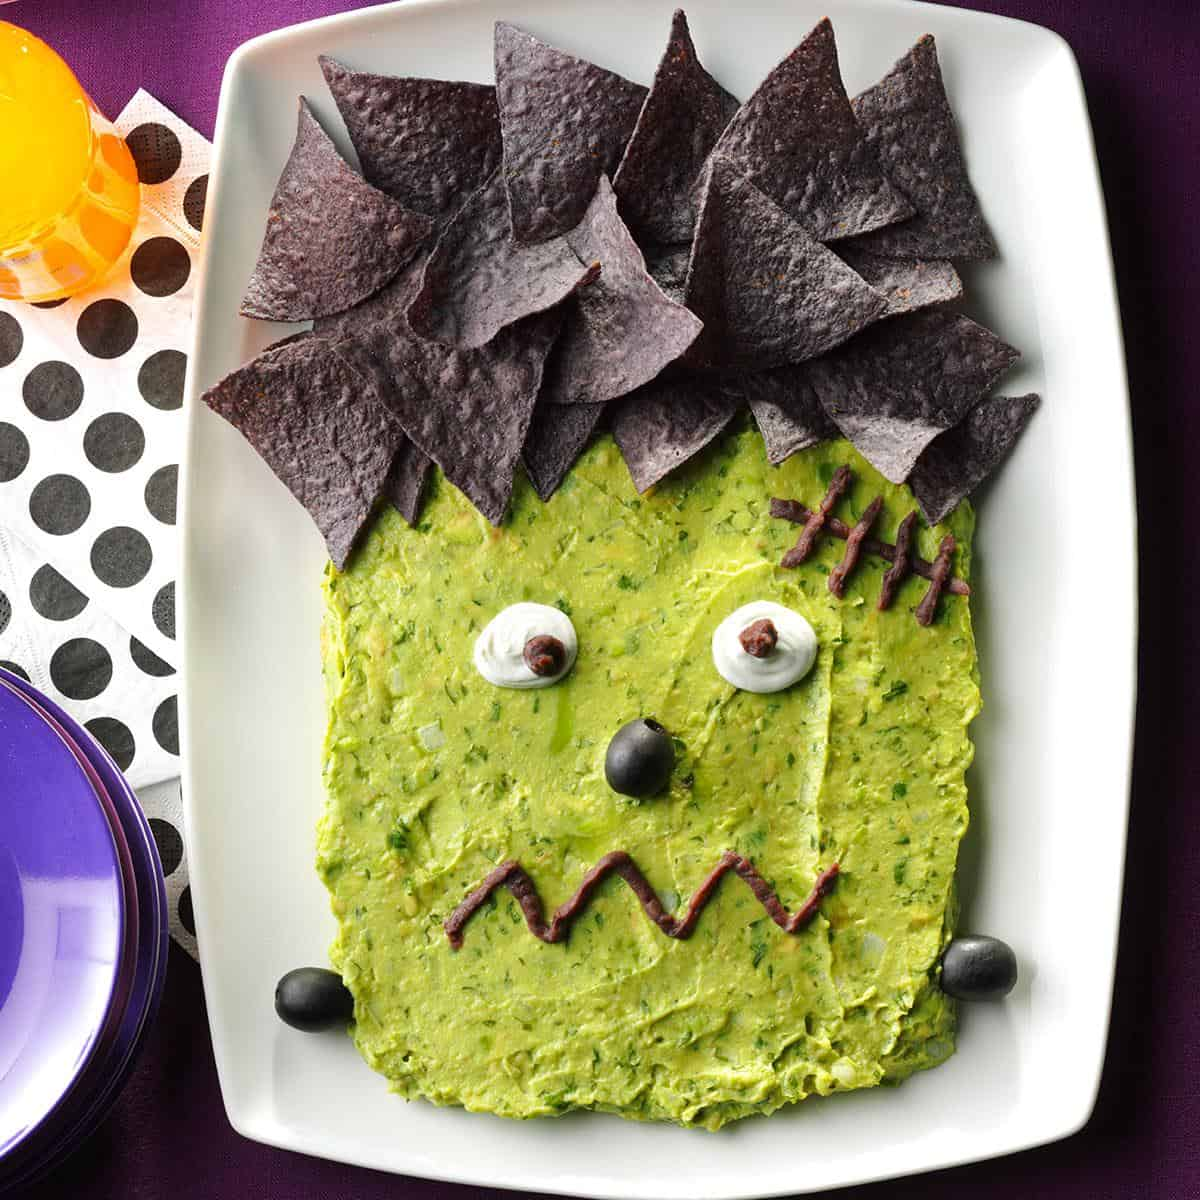 Frankenstein nachos and guacamole